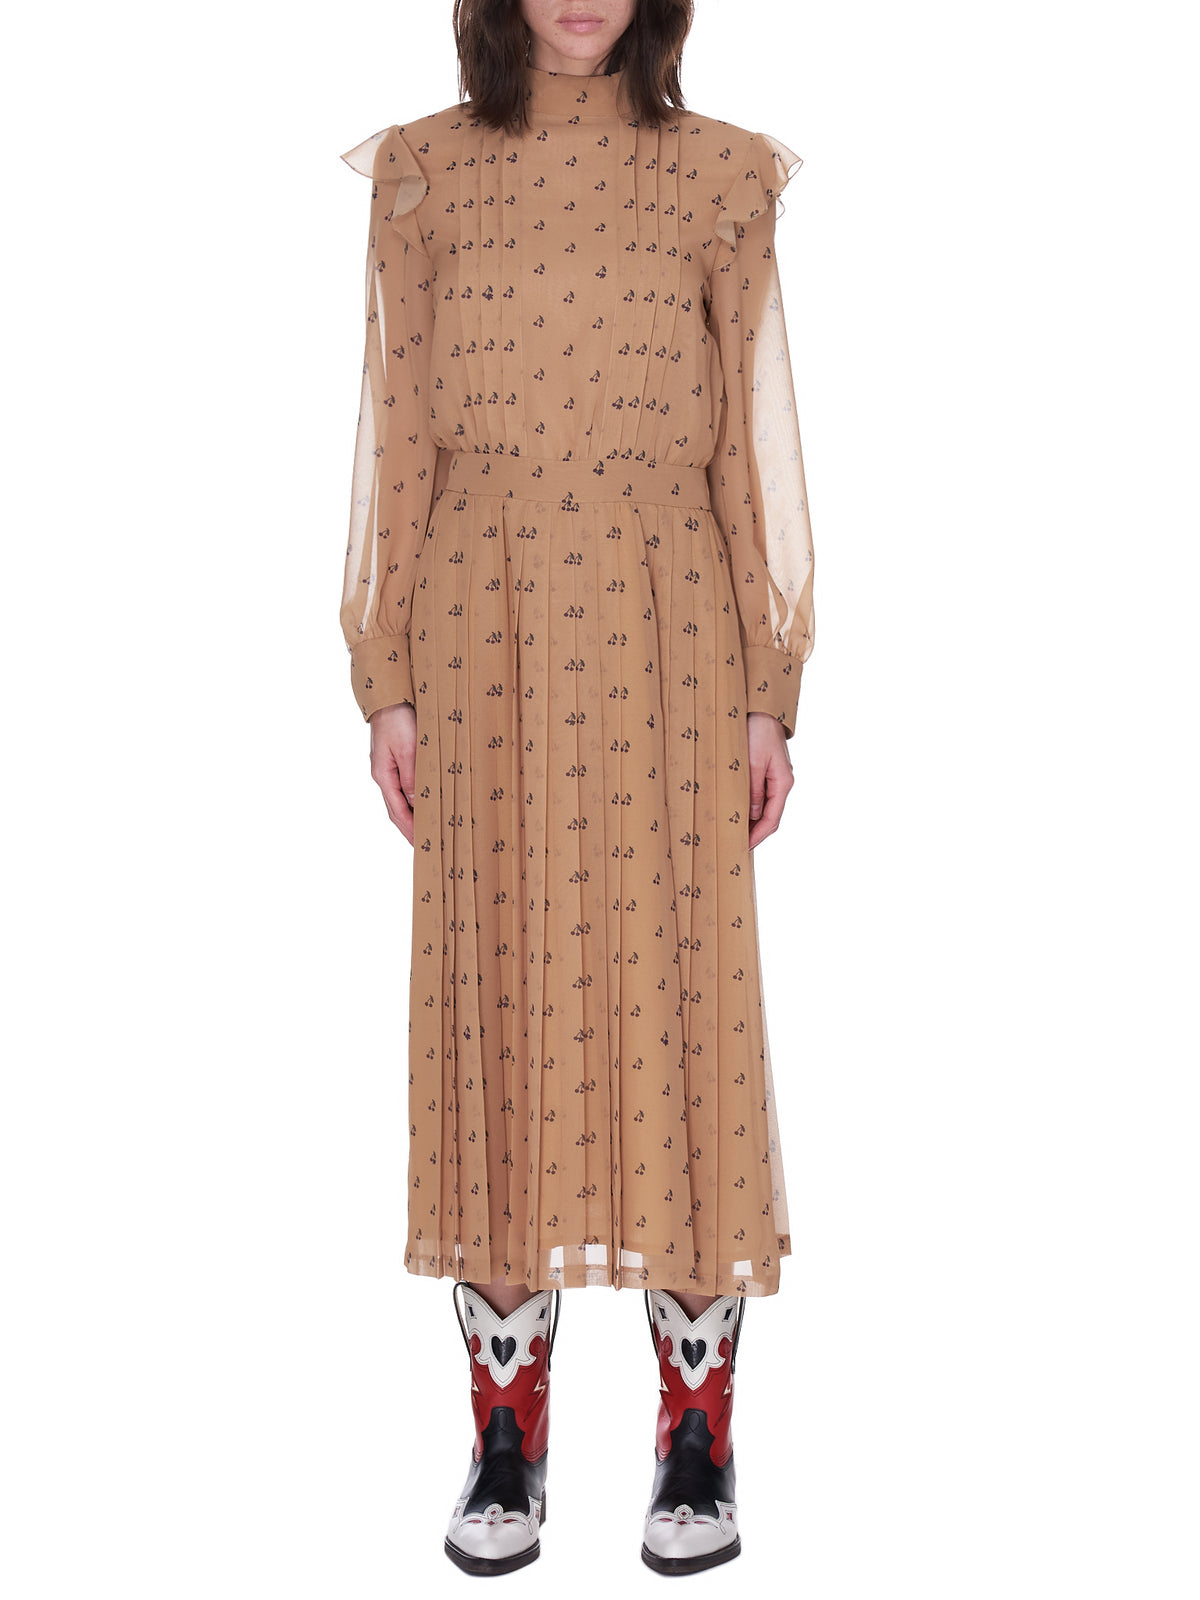 Pleated Cherry Dress (SU1A1702-BEIGE-BASE)